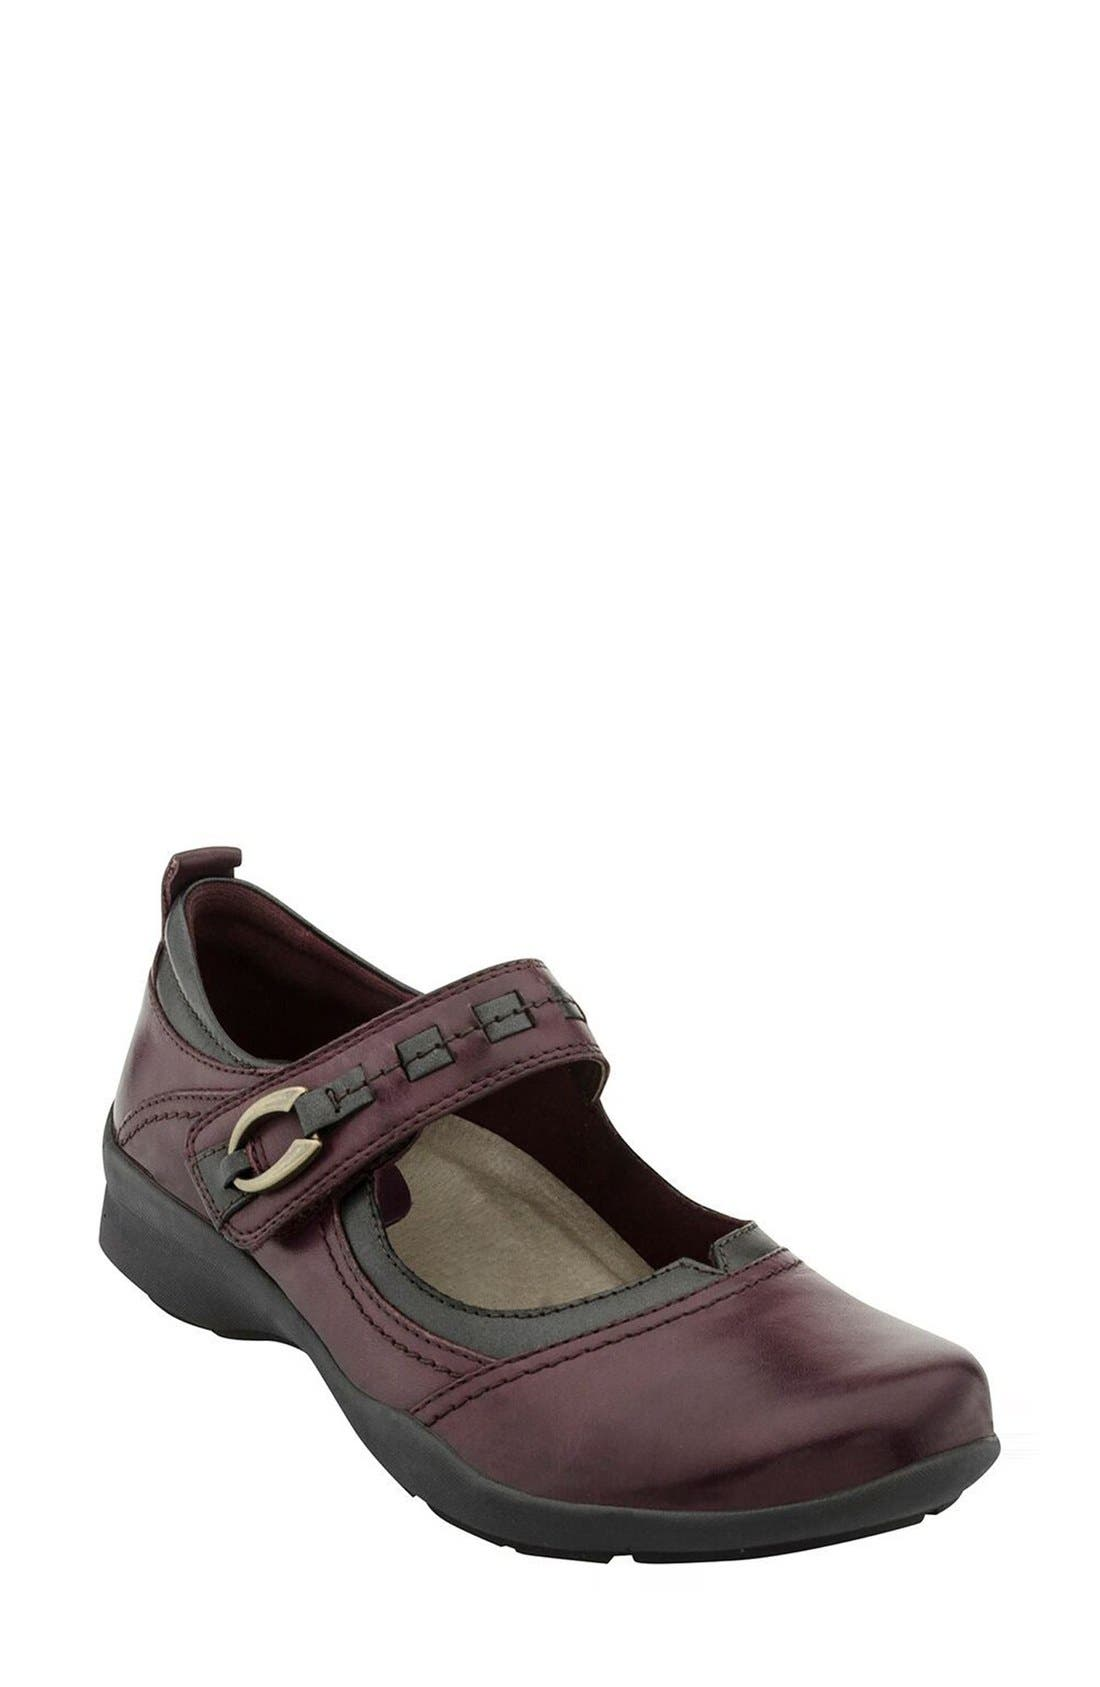 'Angelica' Mary Jane Flat,                             Main thumbnail 1, color,                             Prune Leather